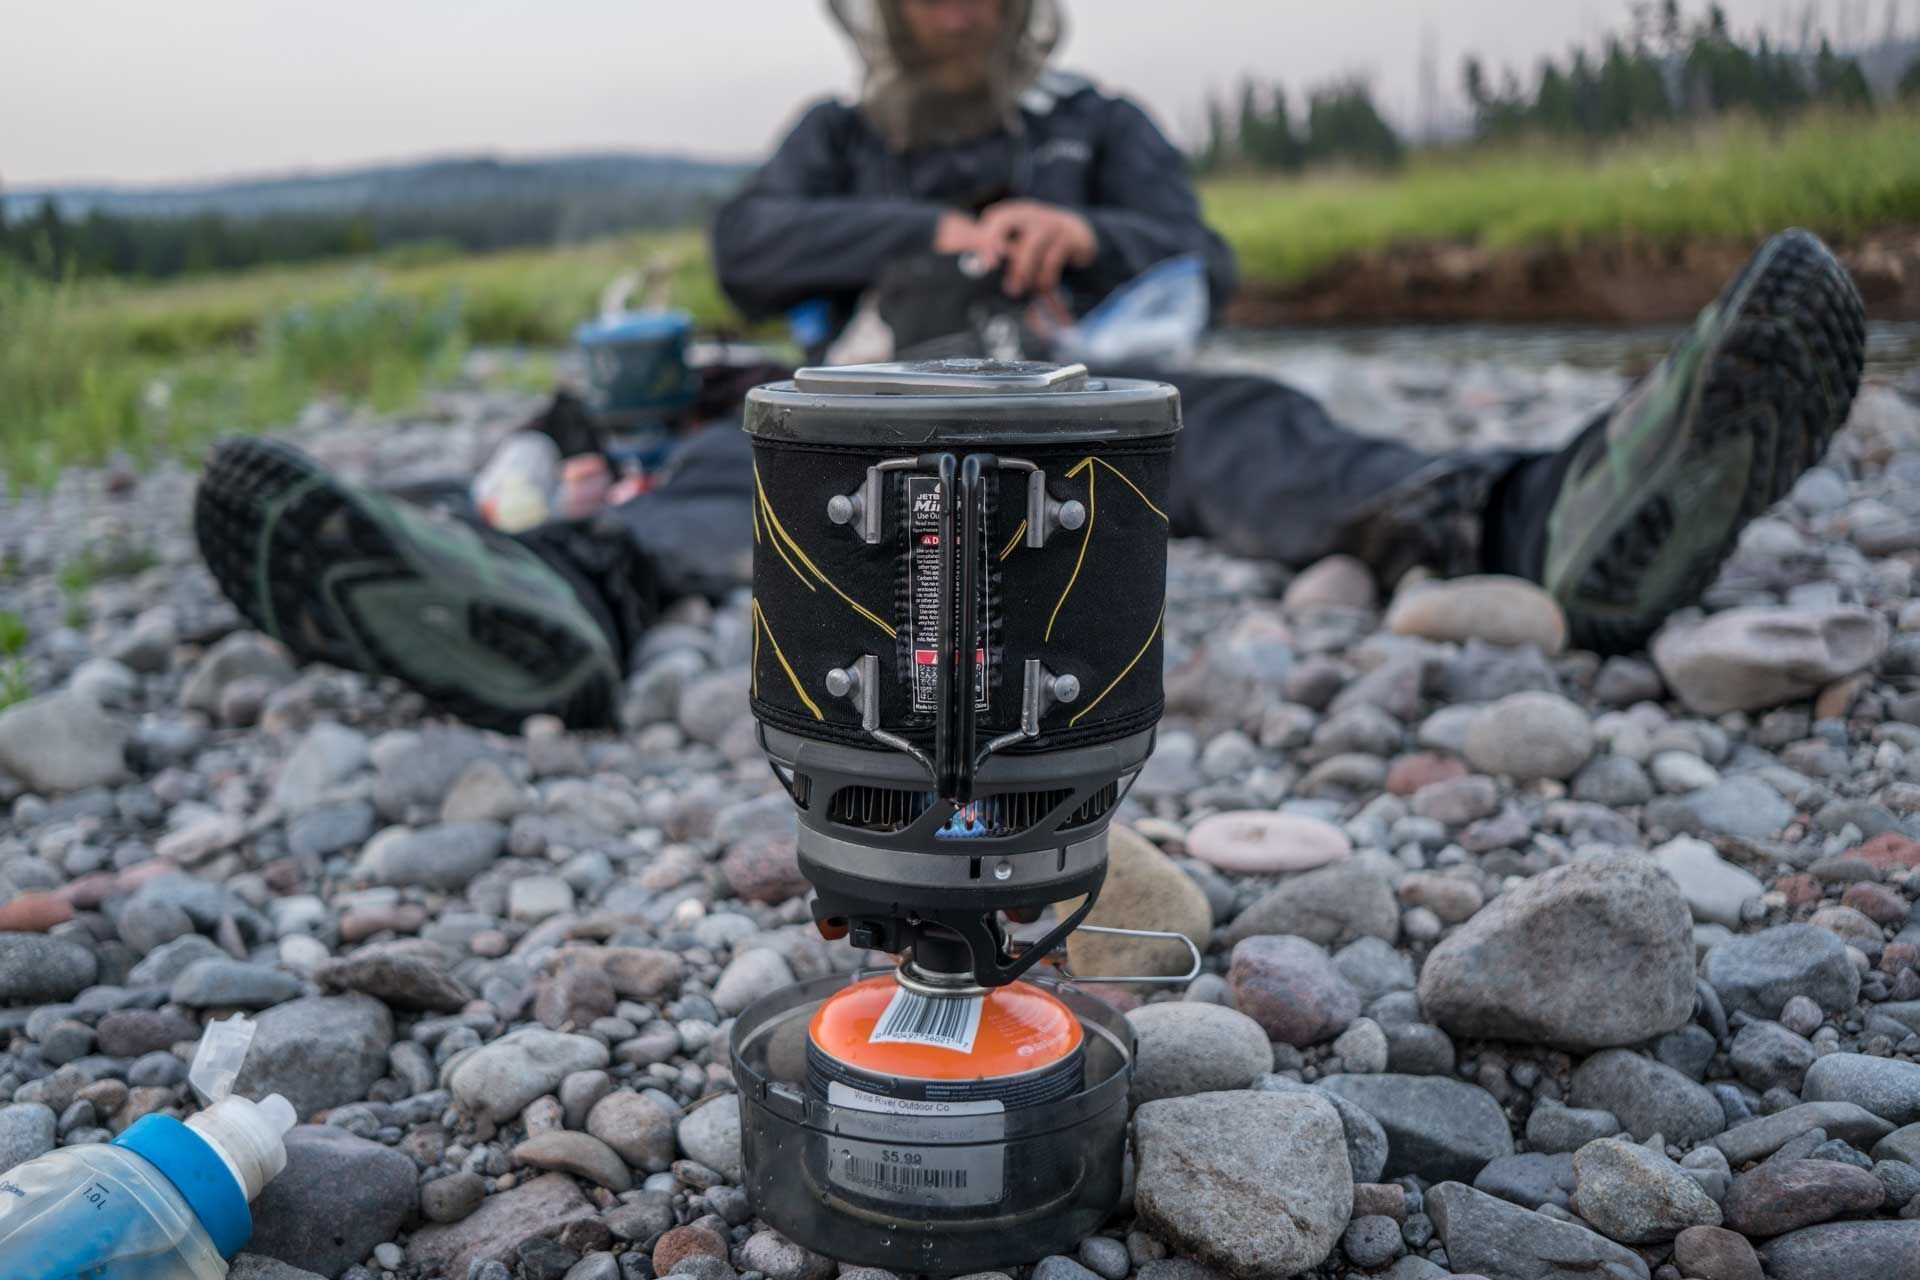 The Best Stoves For Hiking The Pacific Crest Trail | Halfway Anywhere -  The Bes... -  The Best Stoves For Hiking The Pacific Crest Trail | Halfway Anywhere –  The Best Stoves For Hiki -     thruhiking #hikingtrails #backpackinggear #campinggear #coloradohiking #pacificcresttrail #appalachiantrail #famouslastwords #wilderness